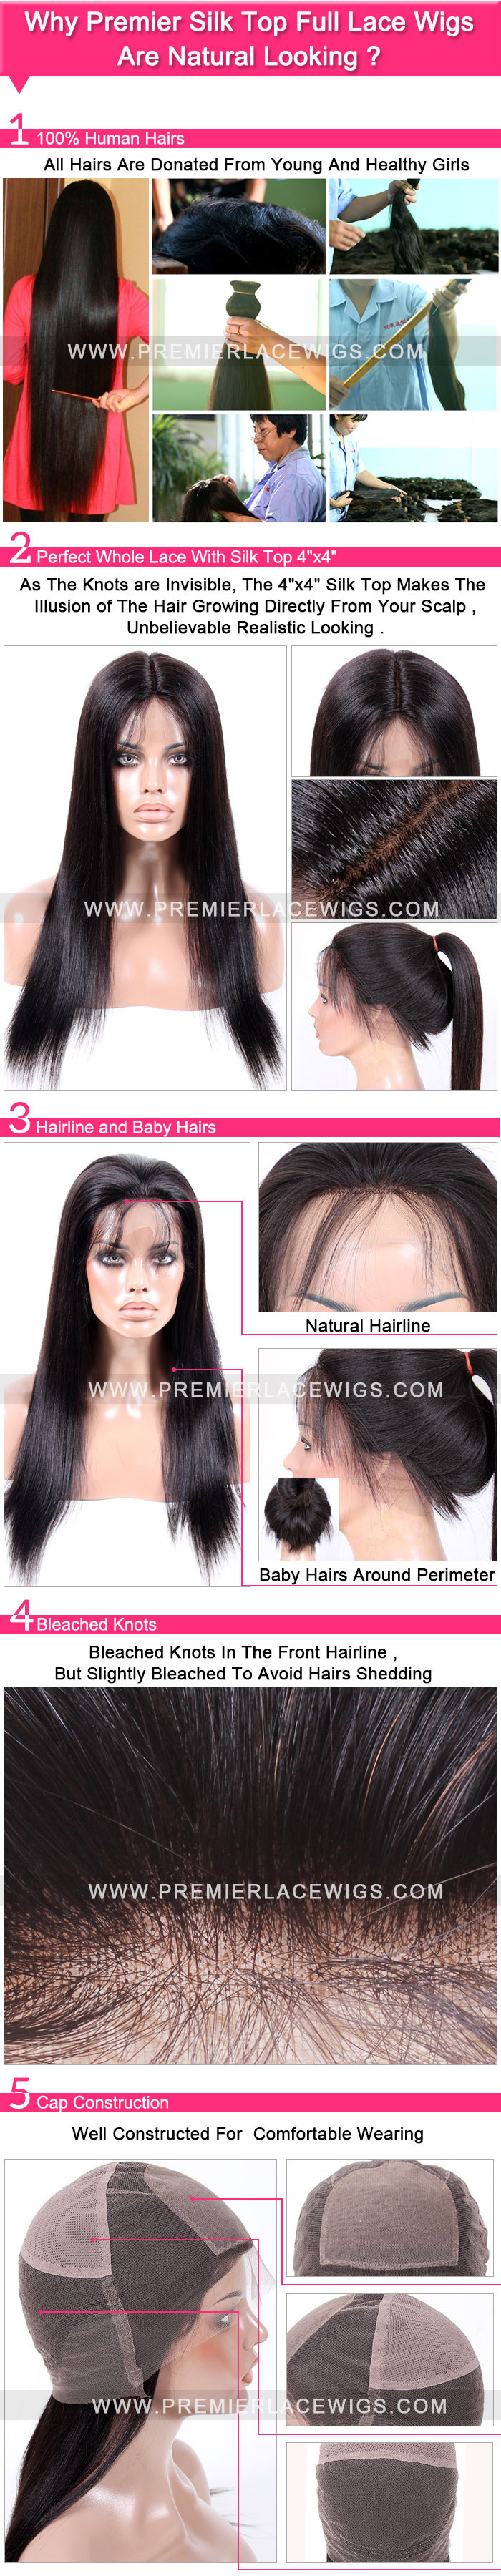 Why Silk Top Full lace wigs natural looking